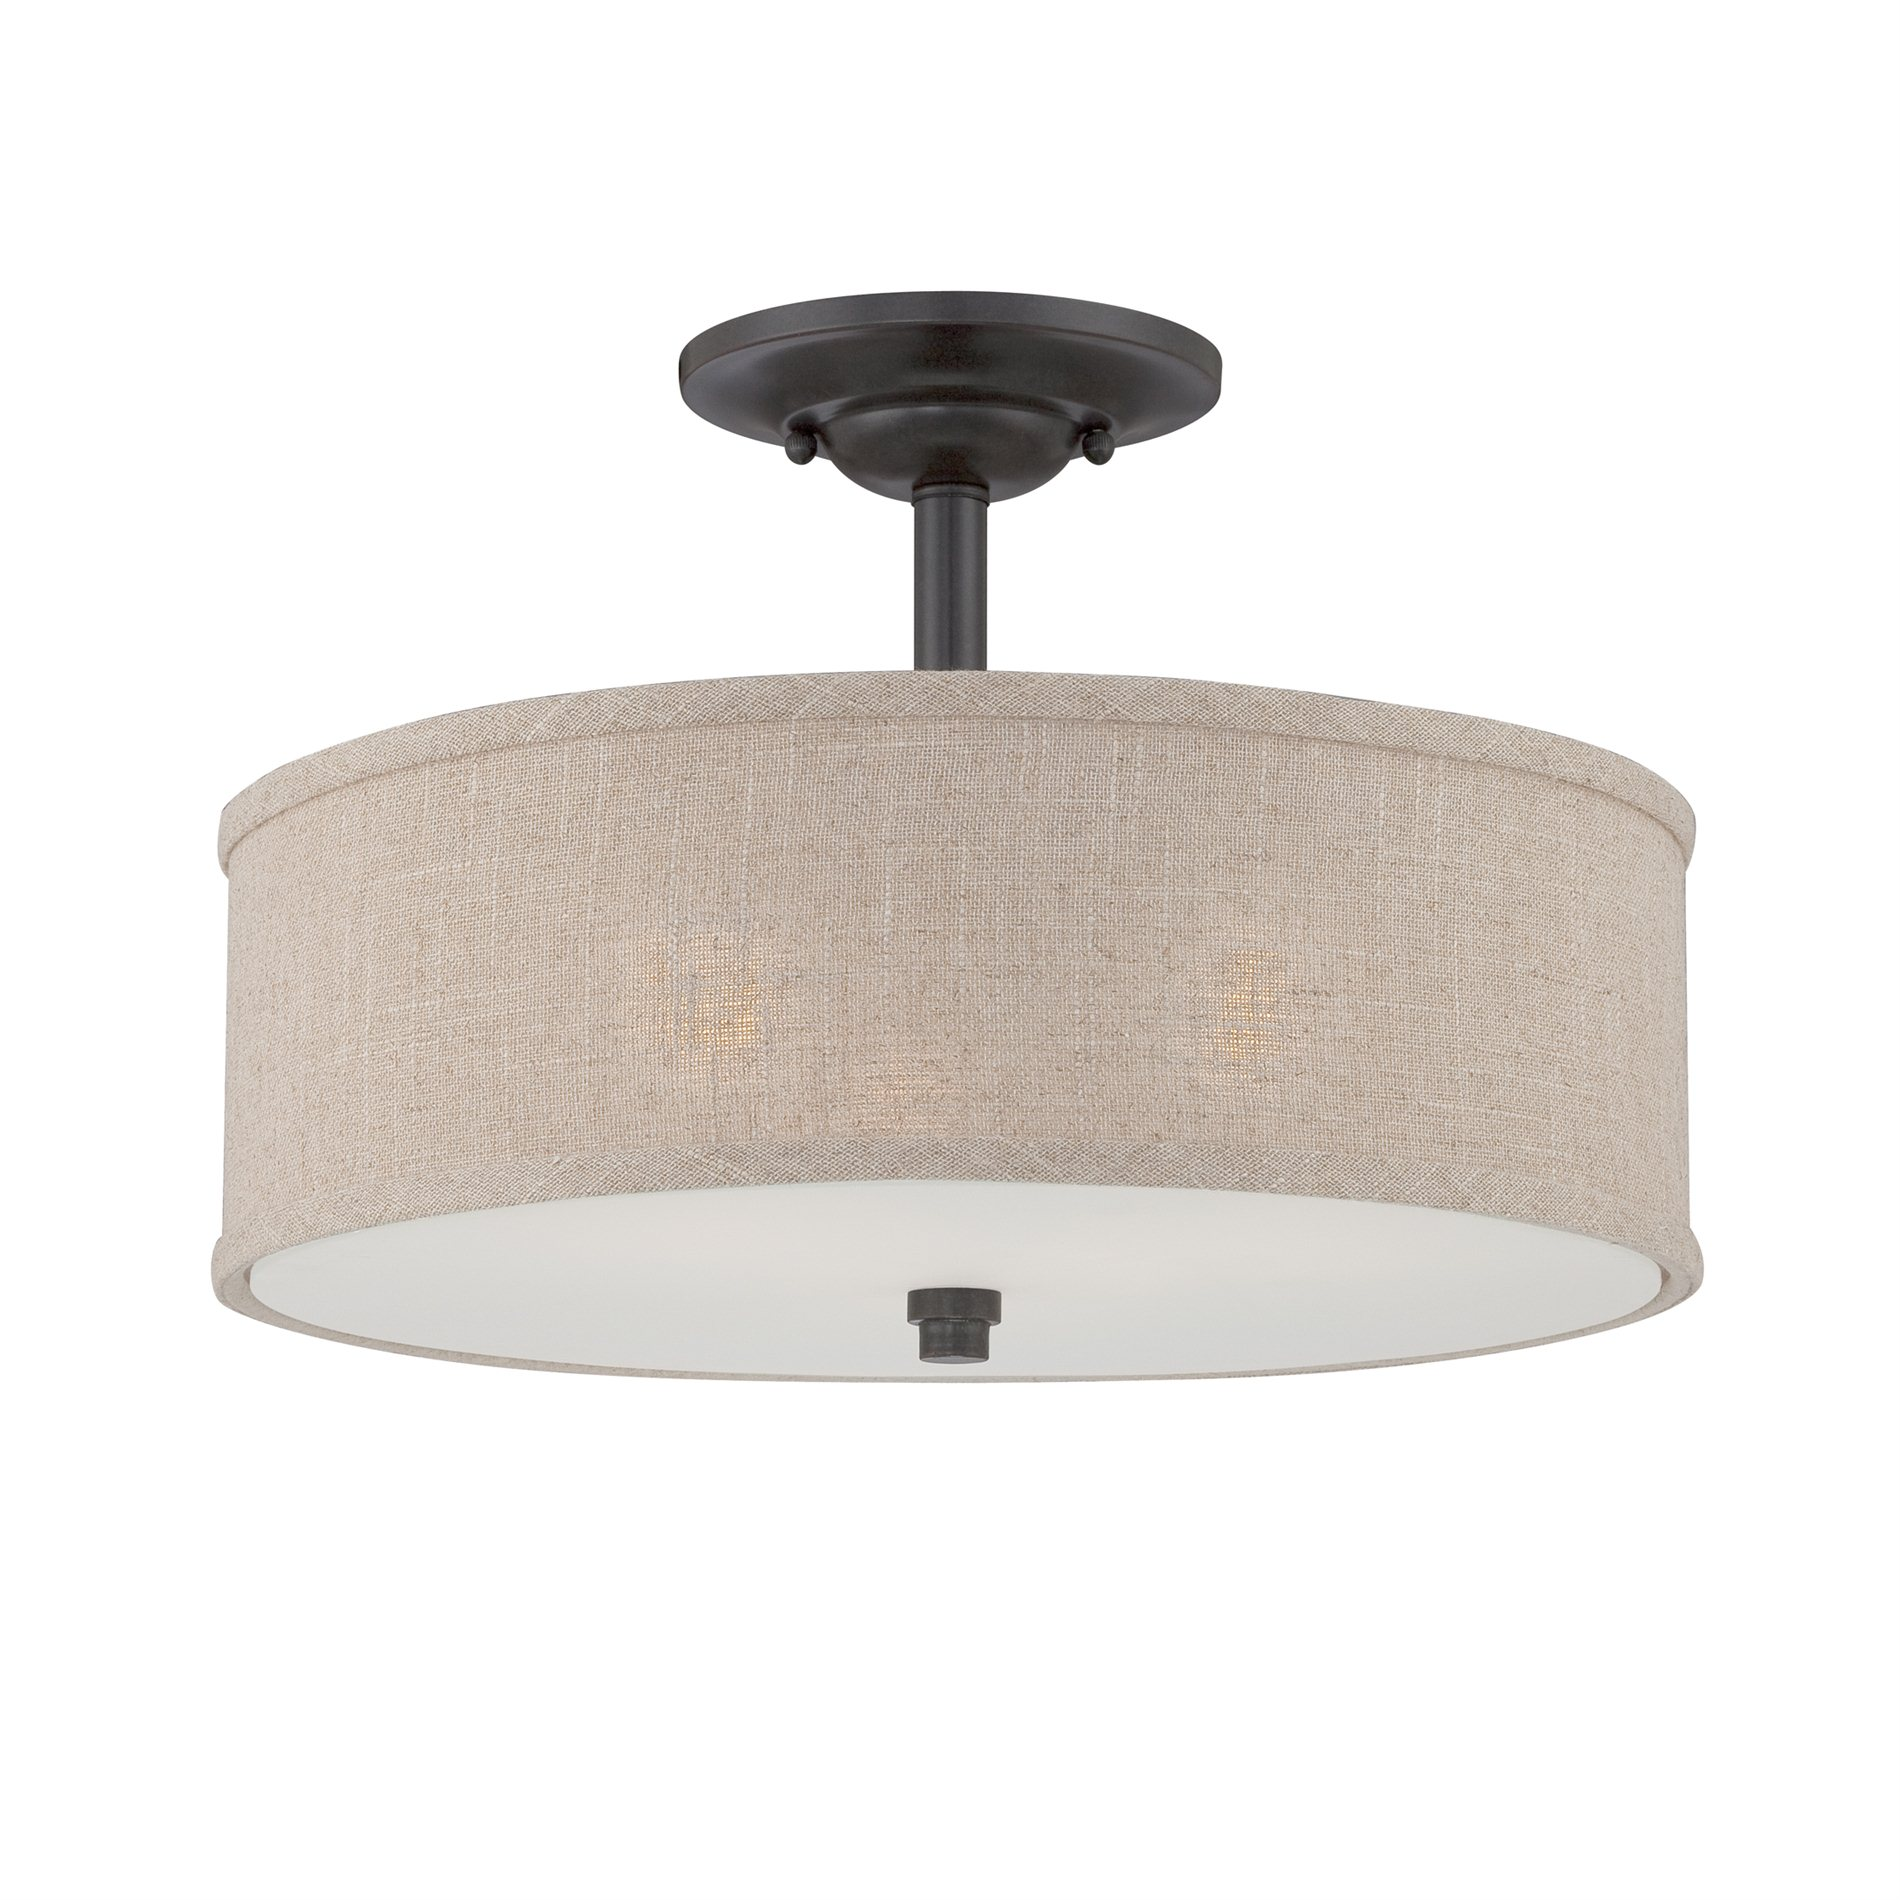 Quoizel Cra1717mc Cloverdale Semi Flush Mount Ceiling